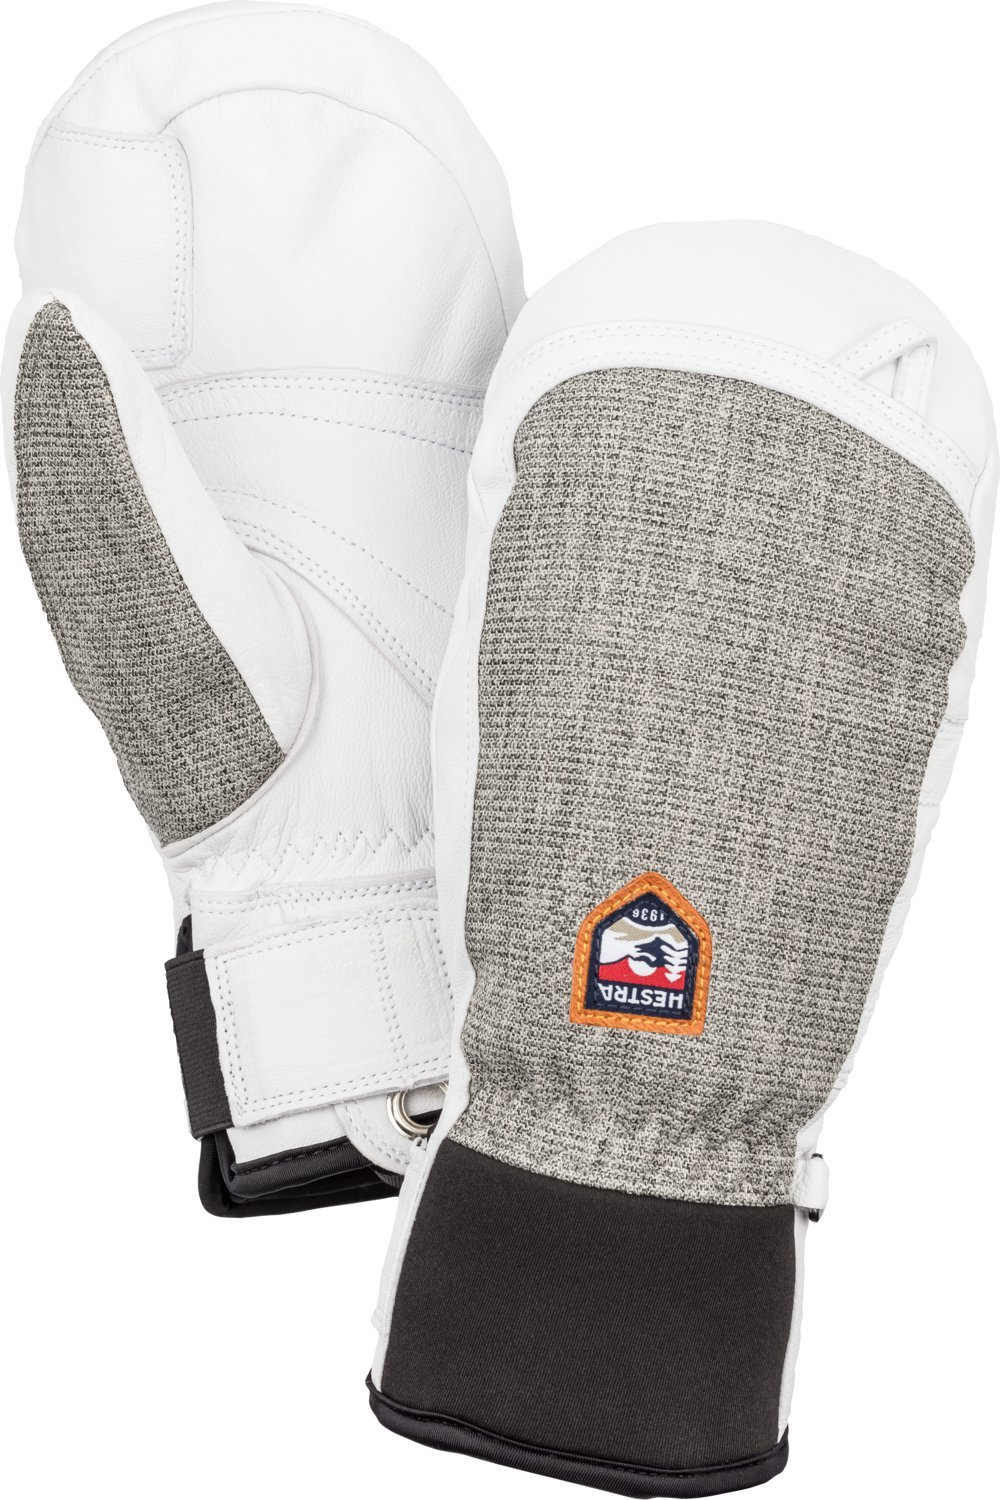 Army Leather Patrol Winter Cold Weather Mens Mitten Hestra Ski Gloves